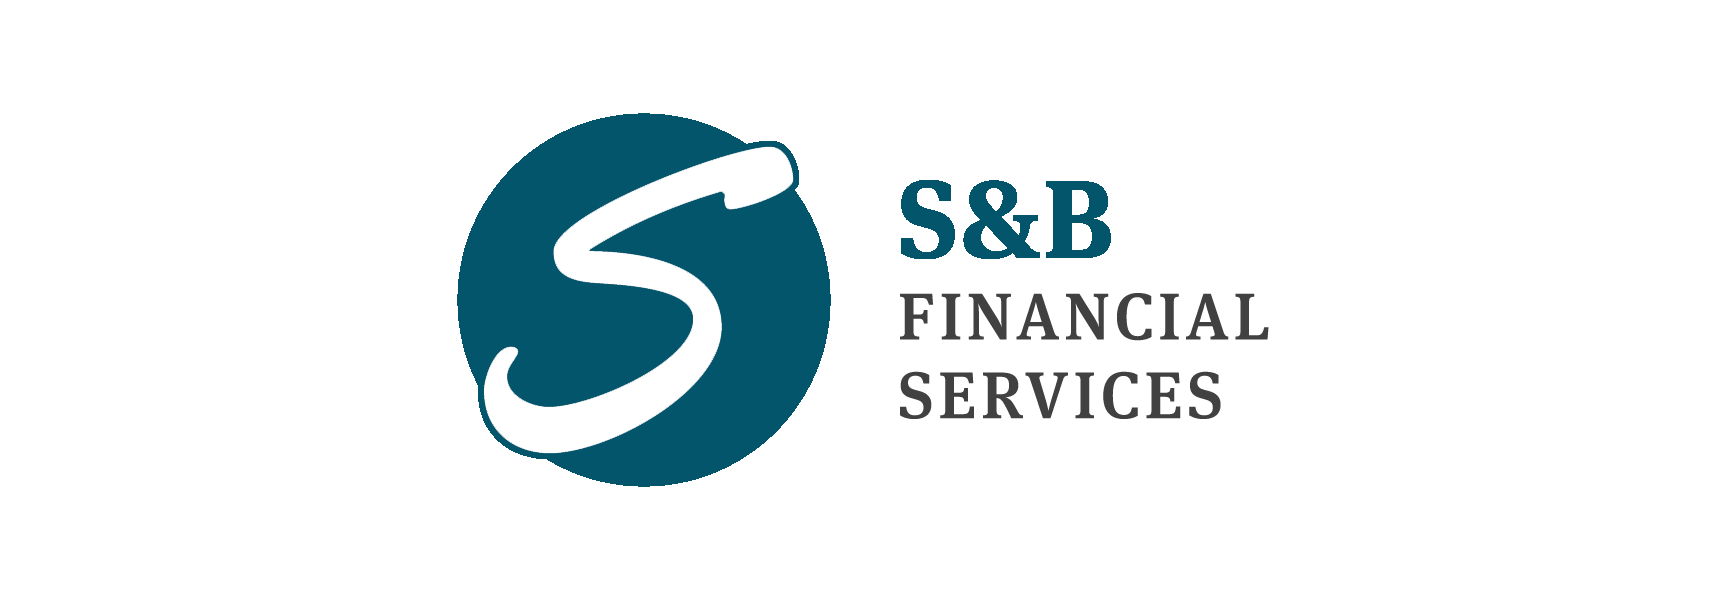 s&b financial services